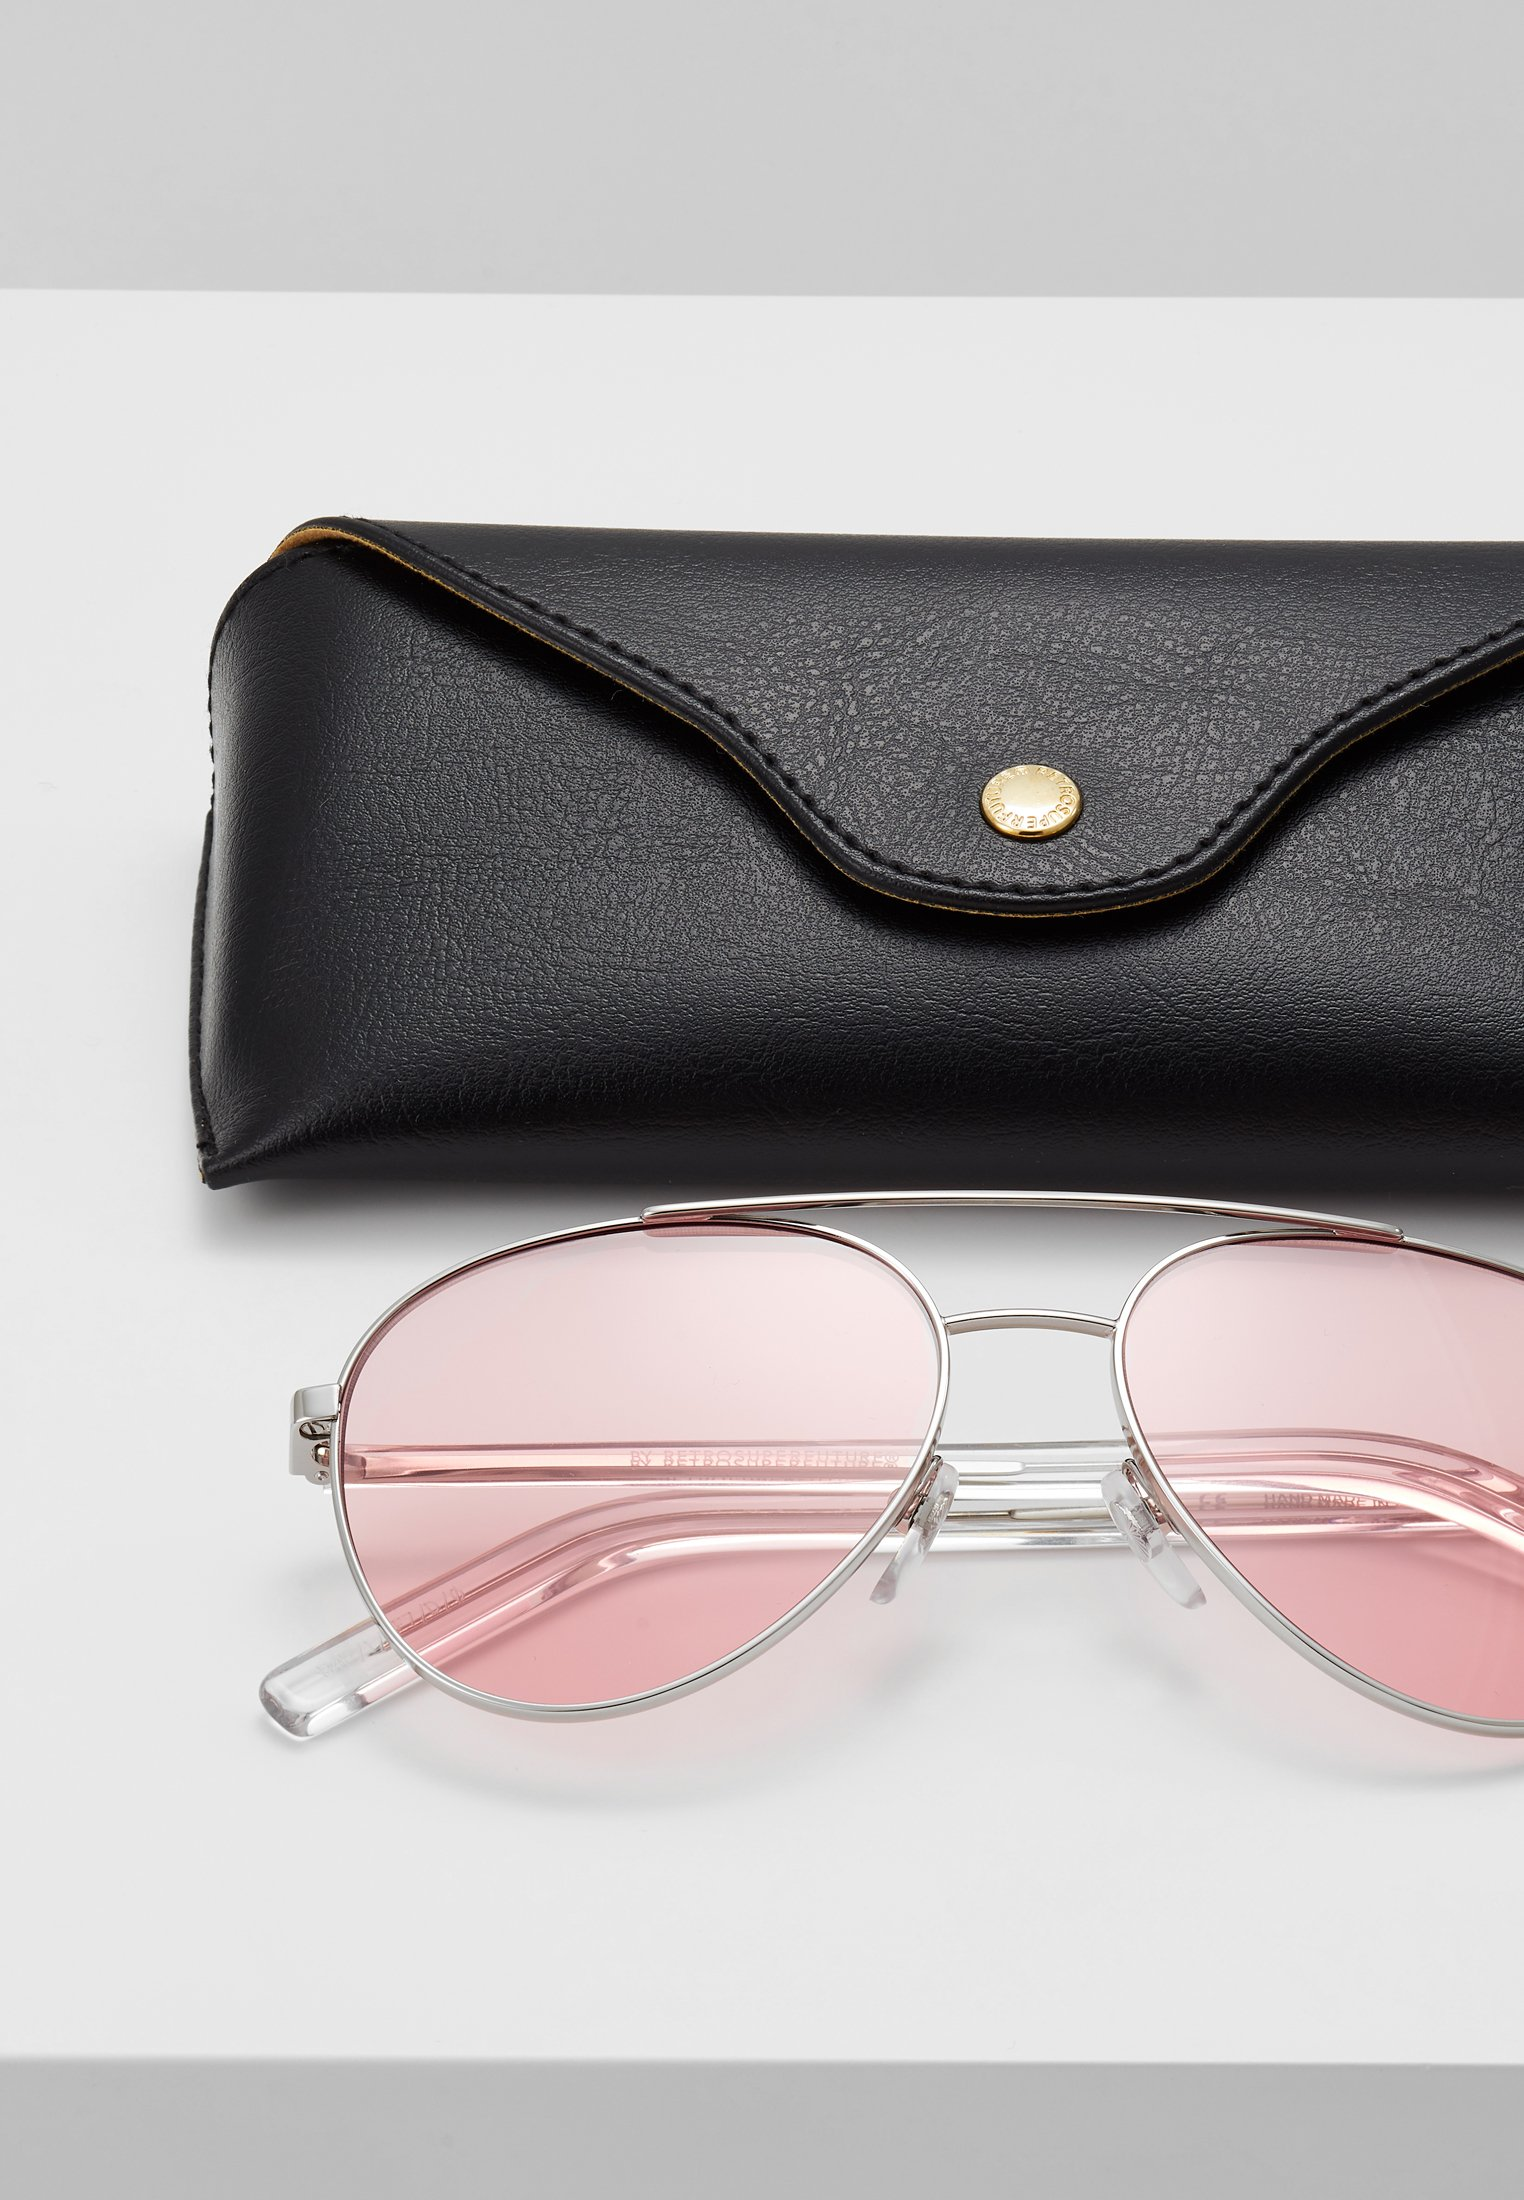 Particular Discount Outlet RETROSUPERFUTURE IDEAL - Sunglasses - pink | men's accessories 2020 z6iNf